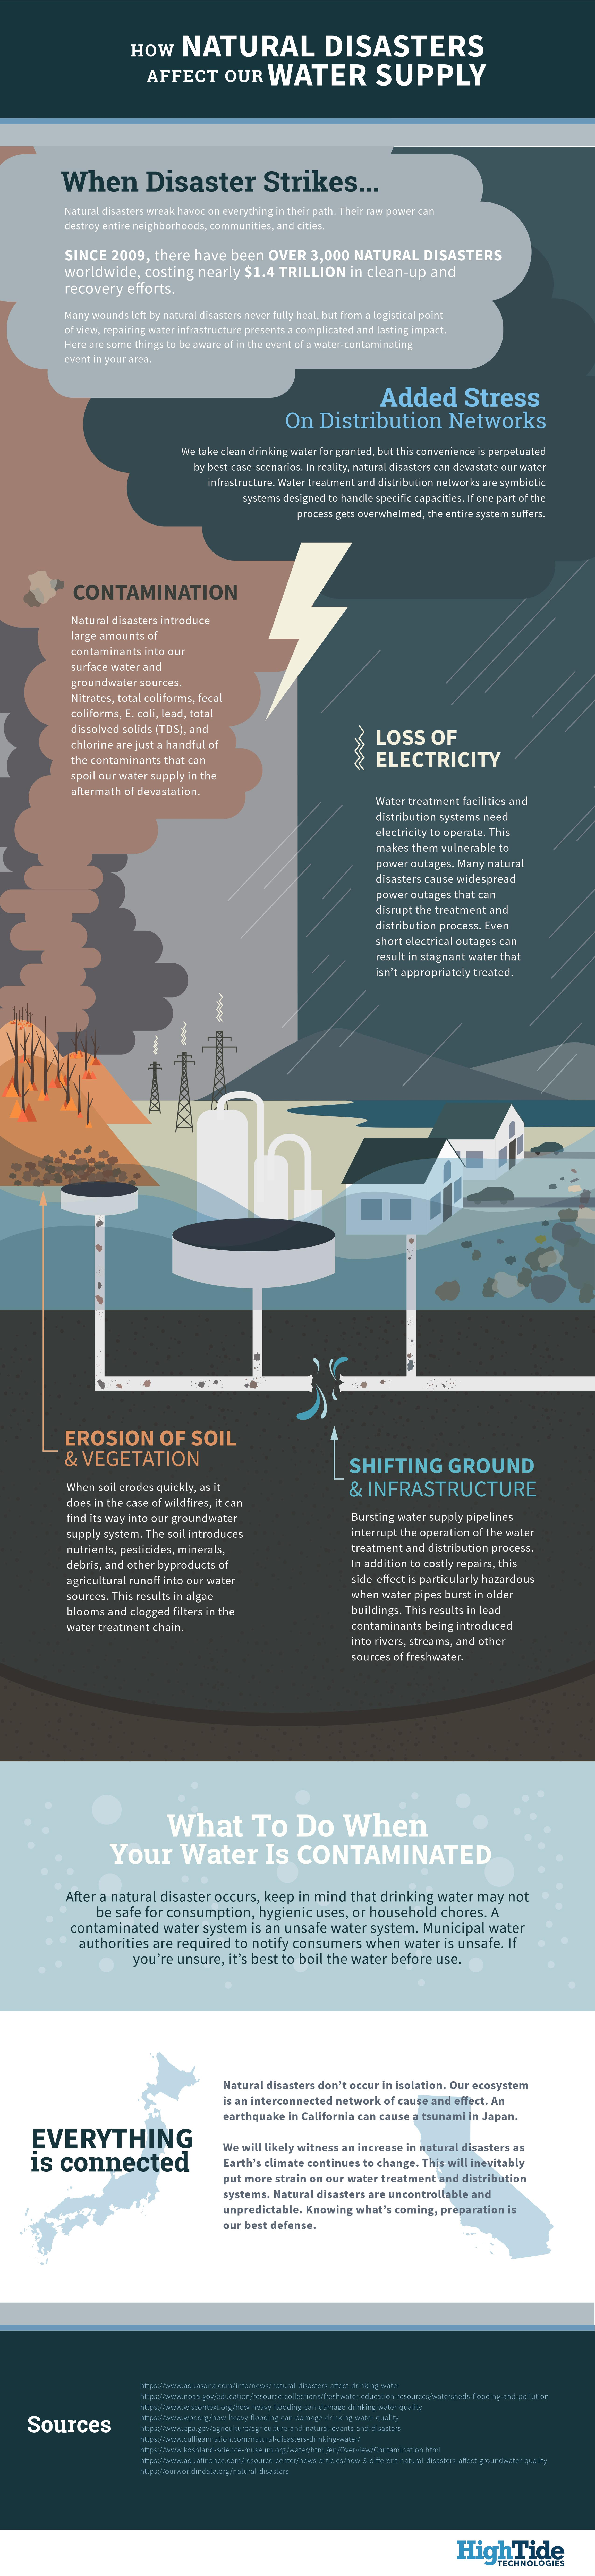 How Natural Disasters Affect Our Water Supply (infographic by High Tide Technologies